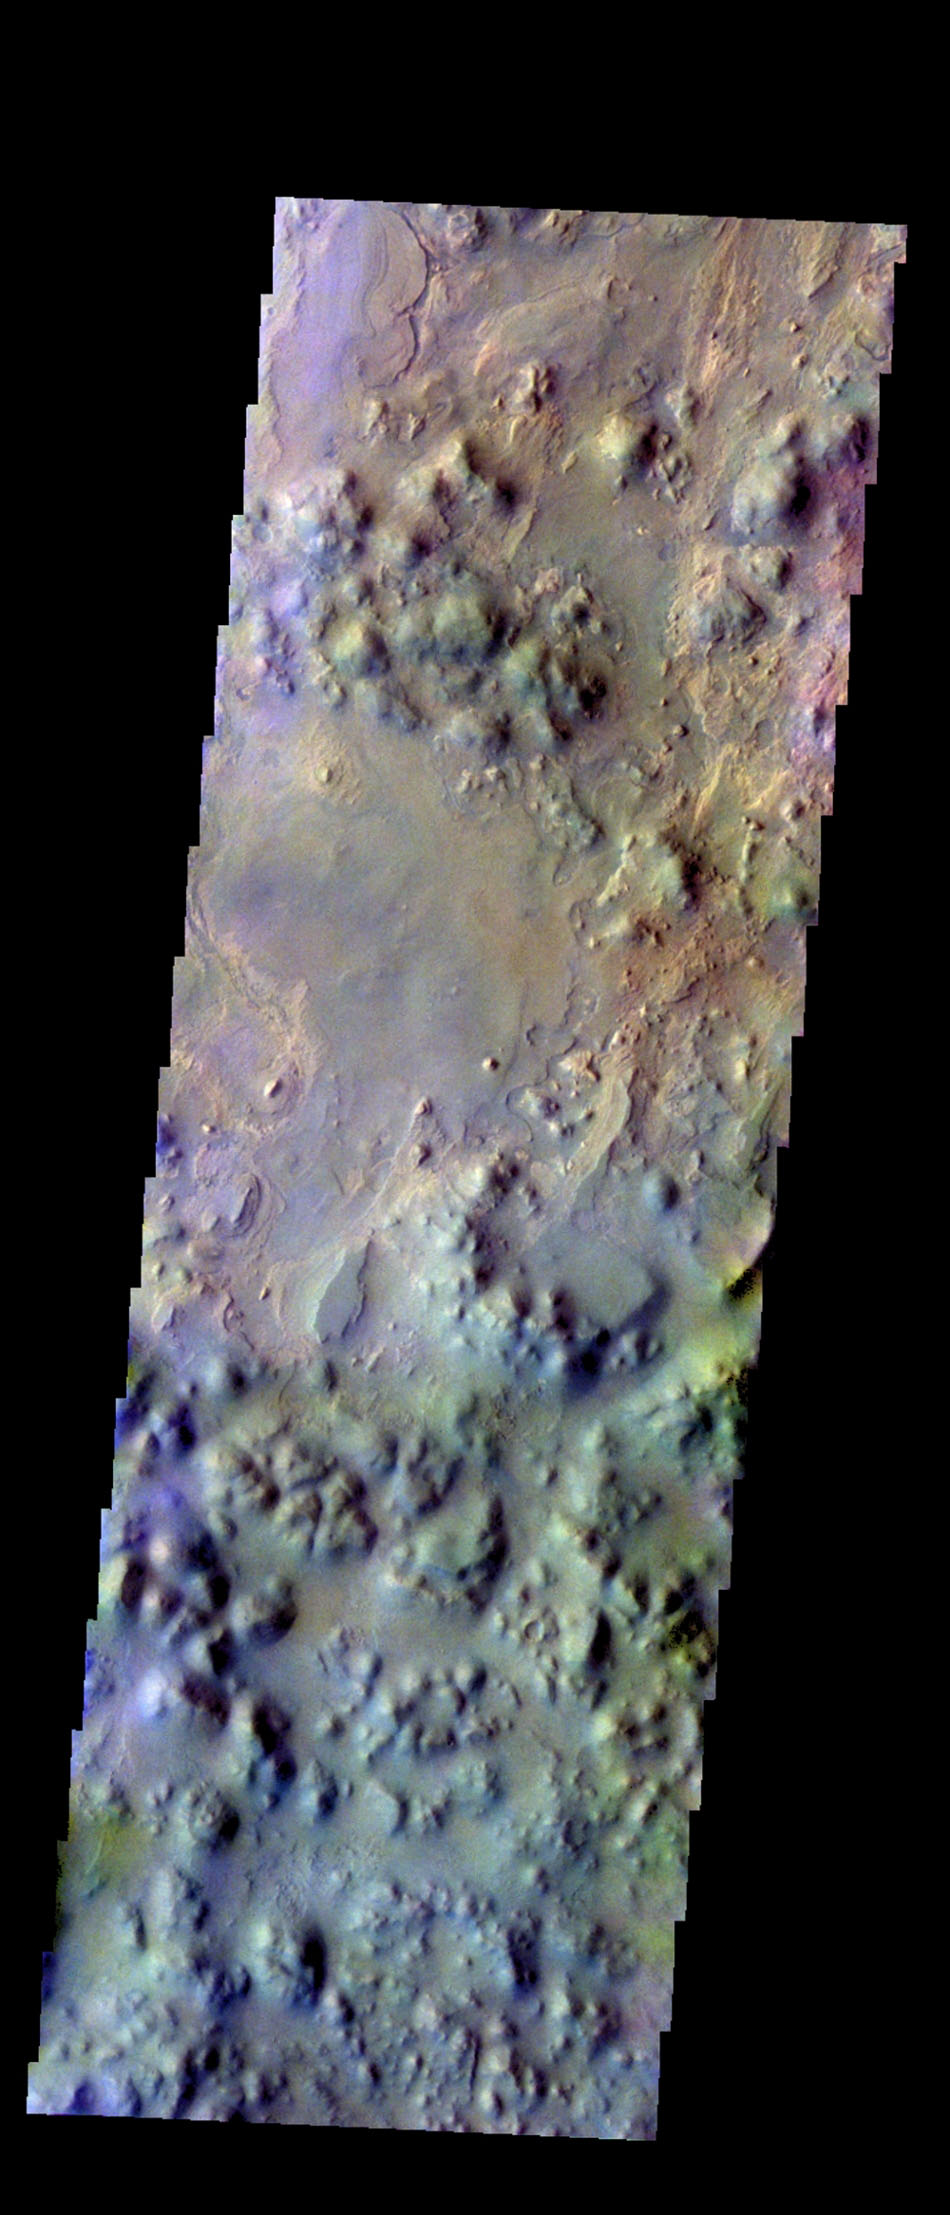 The THEMIS VIS camera contains 5 filters. The data from different filters can be combined in multiple many ways to create a false color image. This image from NASA's 2001 Mars Odyssey spacecraft shows part of Iani Chaos.